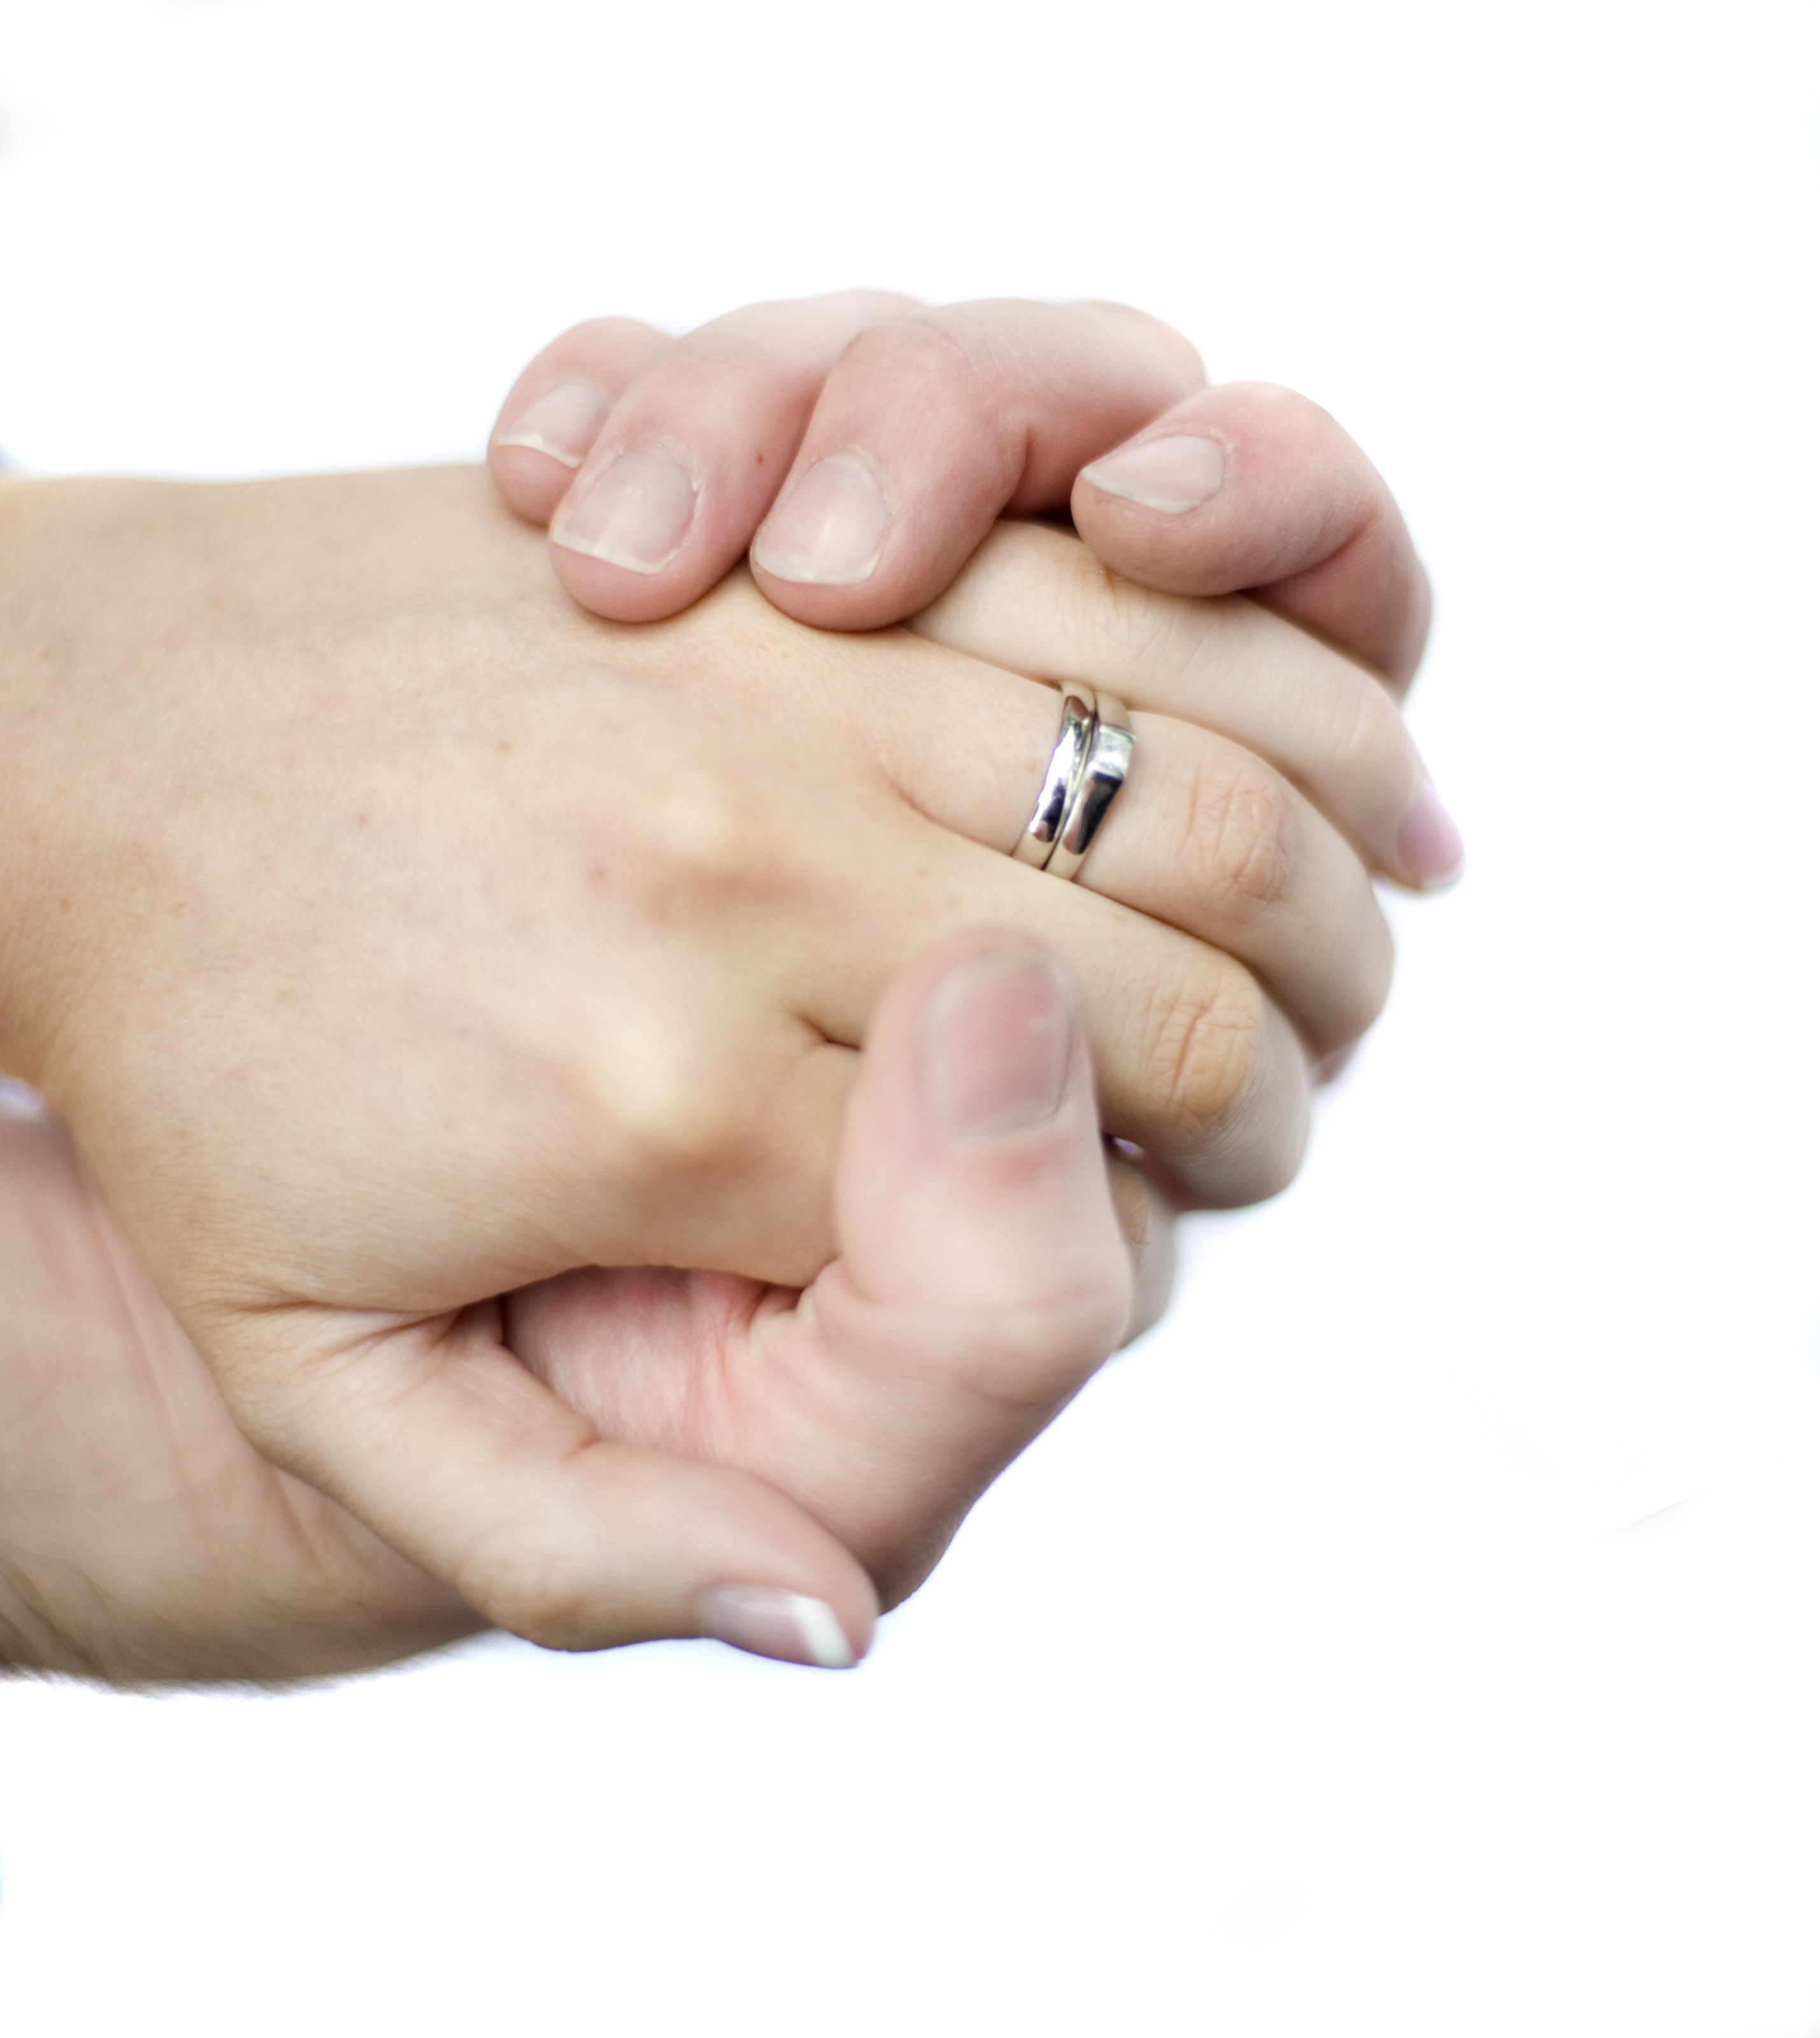 Free Stock Photo 5181 couple holding hands   freeimageslive